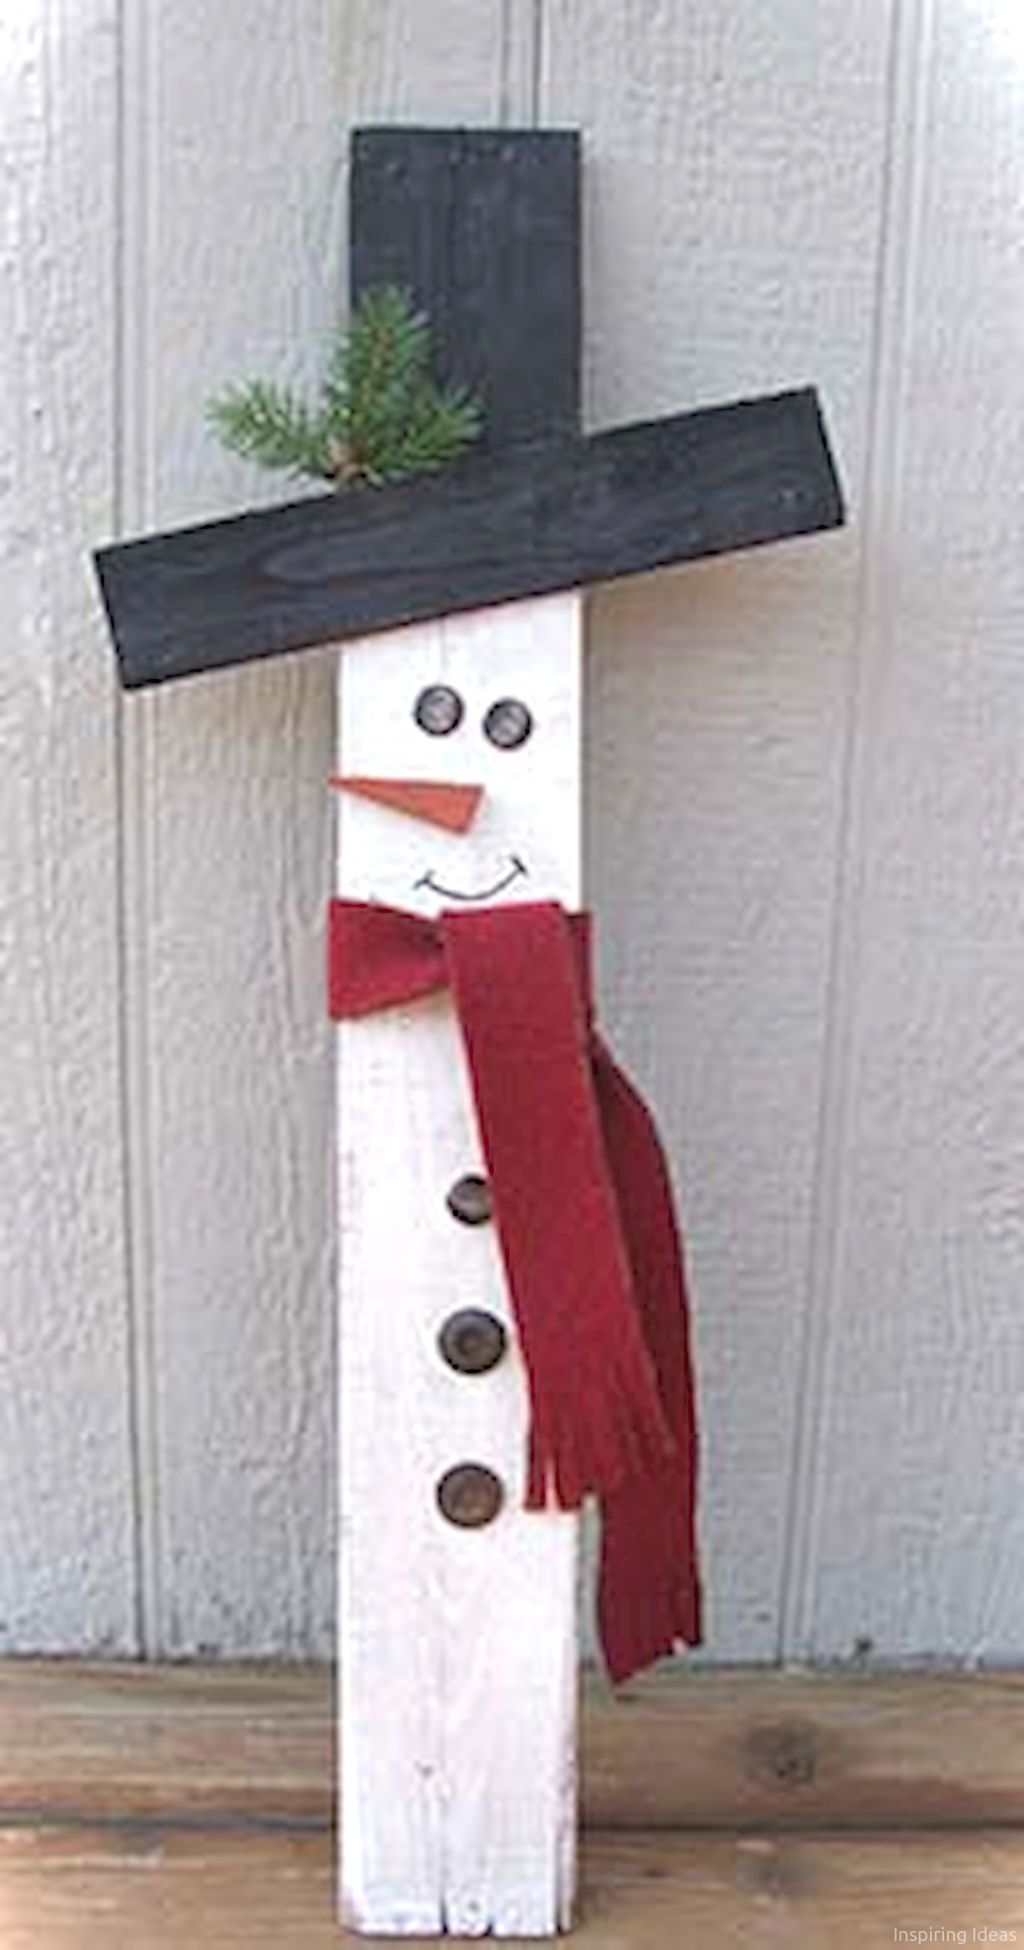 0035 Easy Diy Wooden Christmas Craft Ideas Wooden Christmas Crafts Christmas Wood Crafts Christmas Crafts